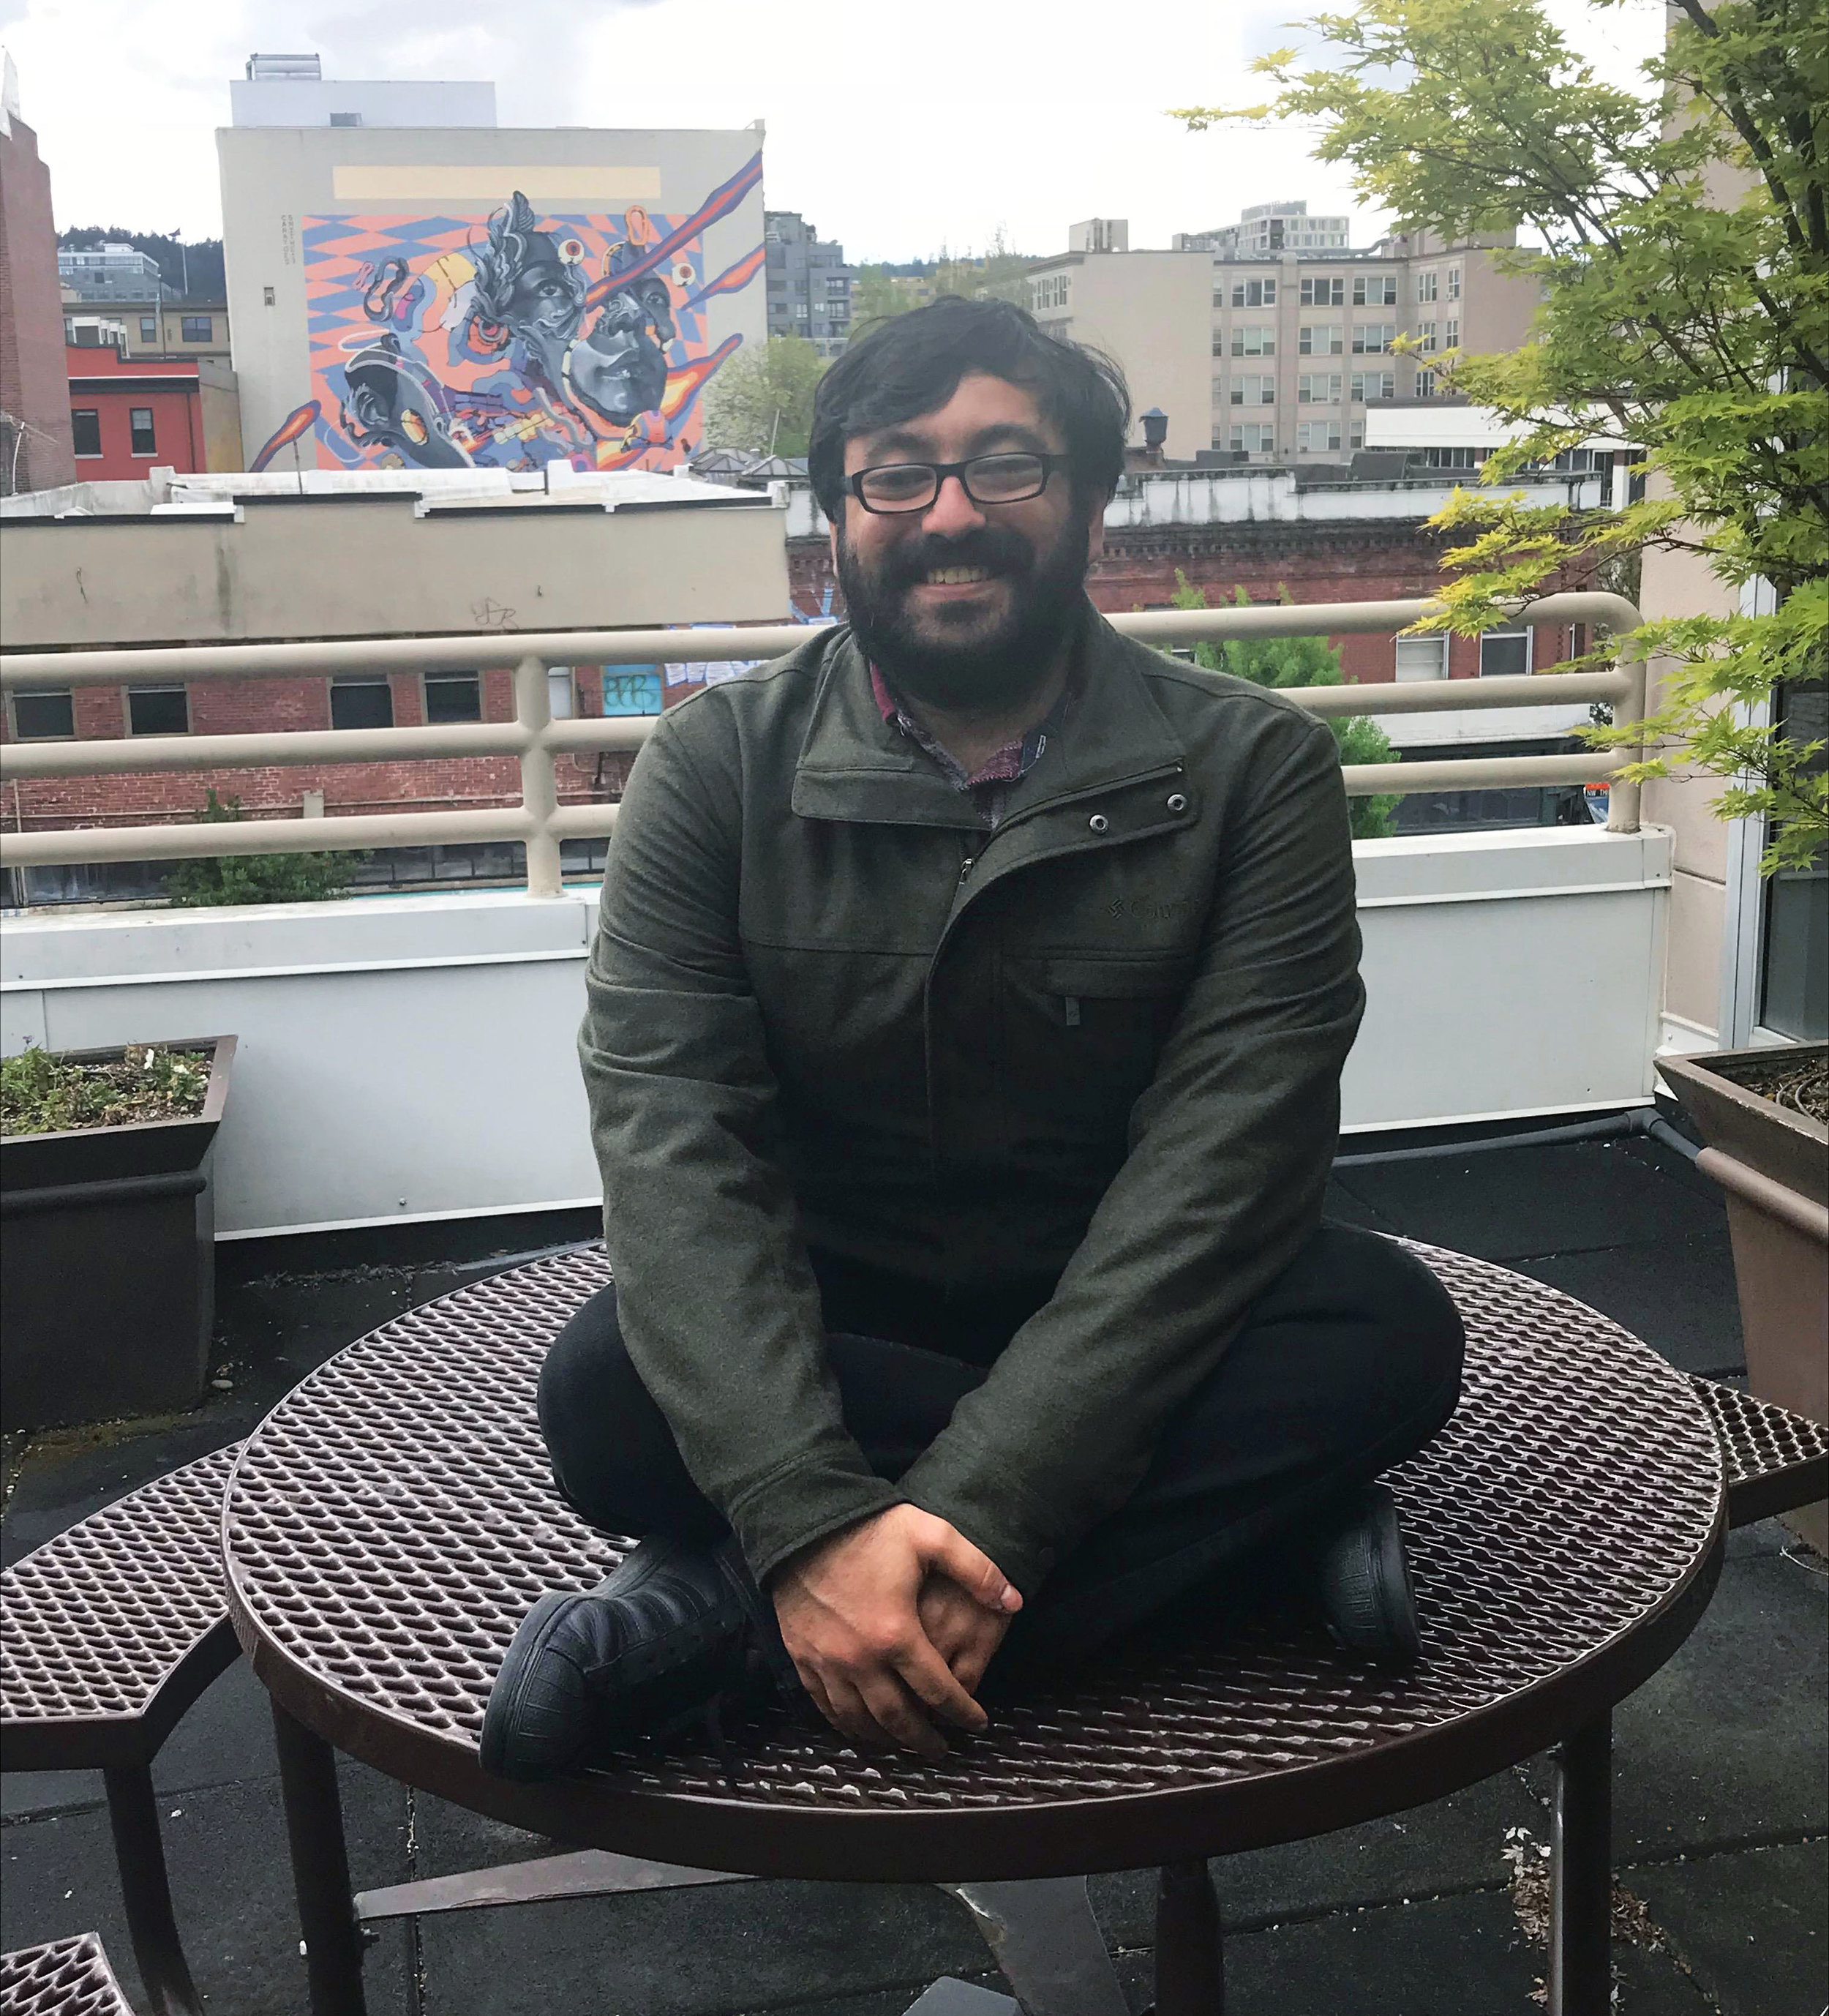 Mohammed sits cross-legged on top of a round picnic table, smiling.